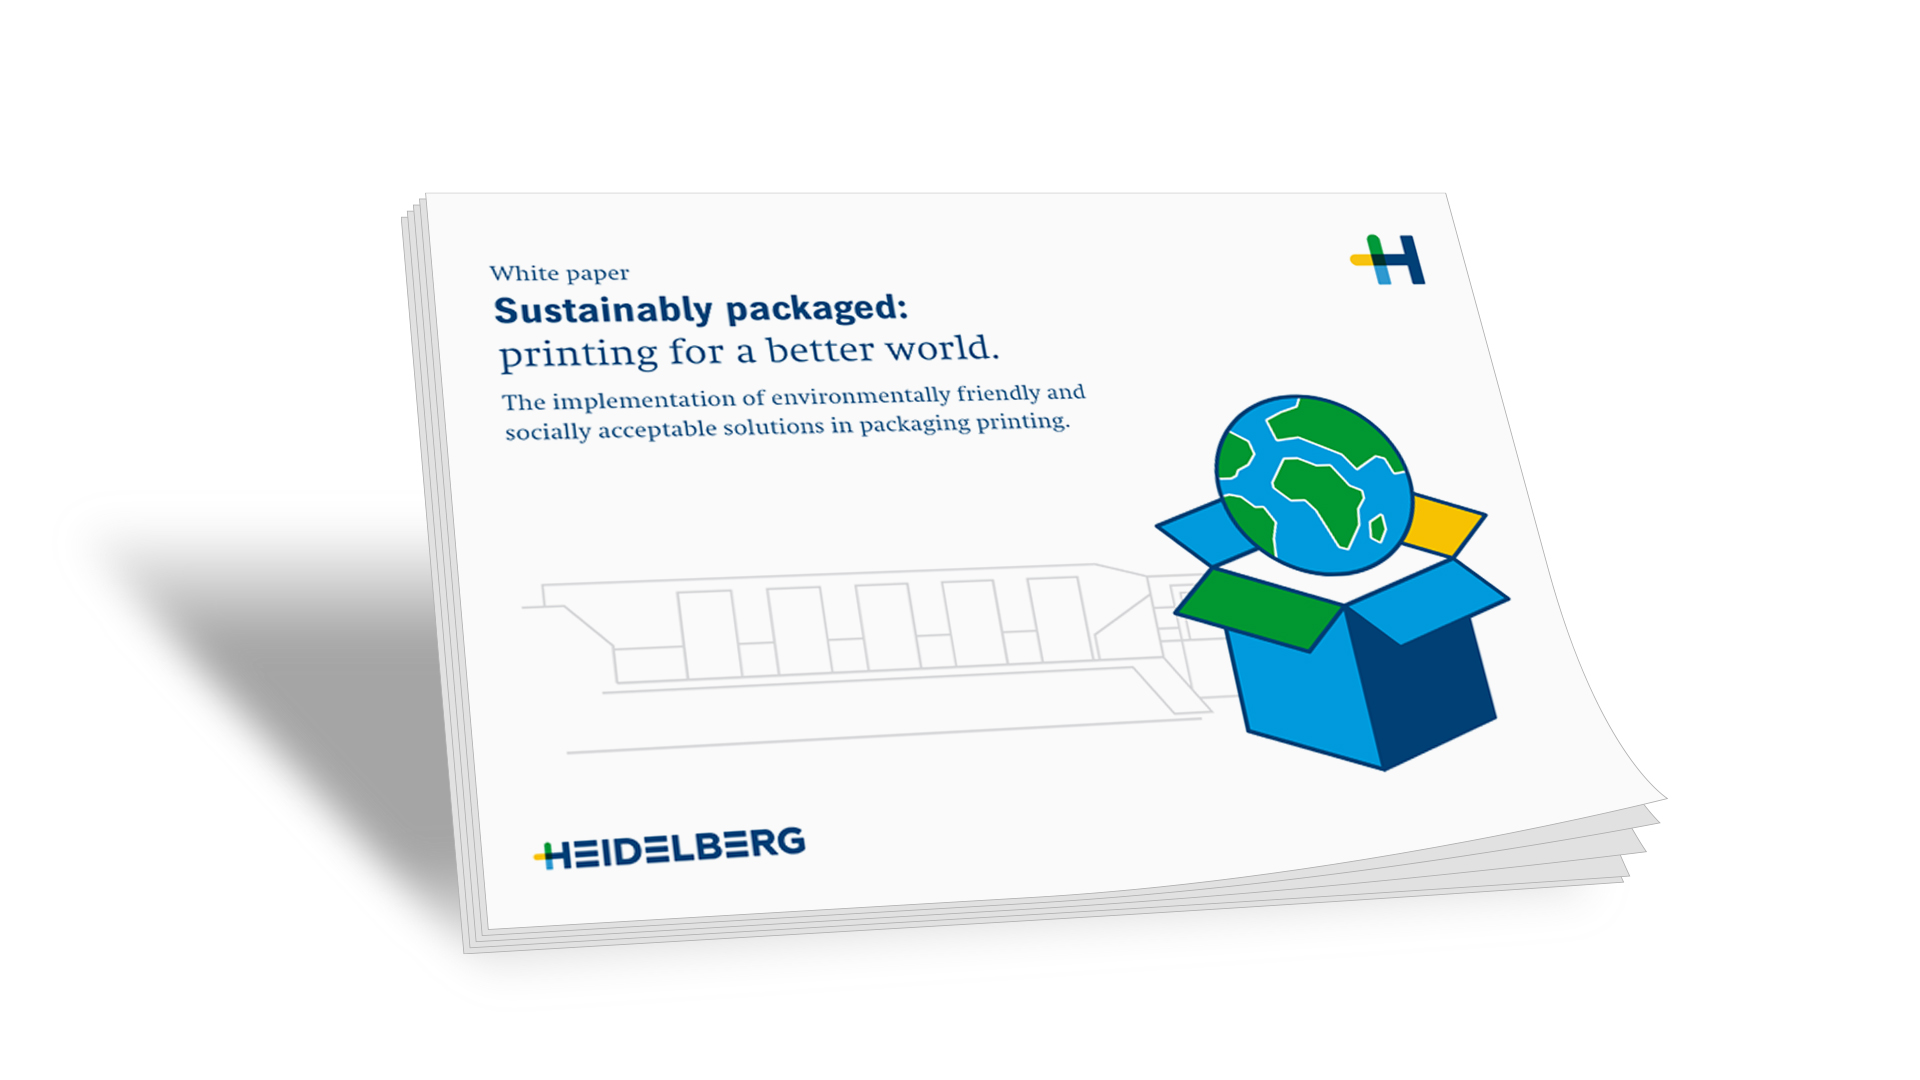 Whitepaper: Sustainably packaged: printing for a better world.